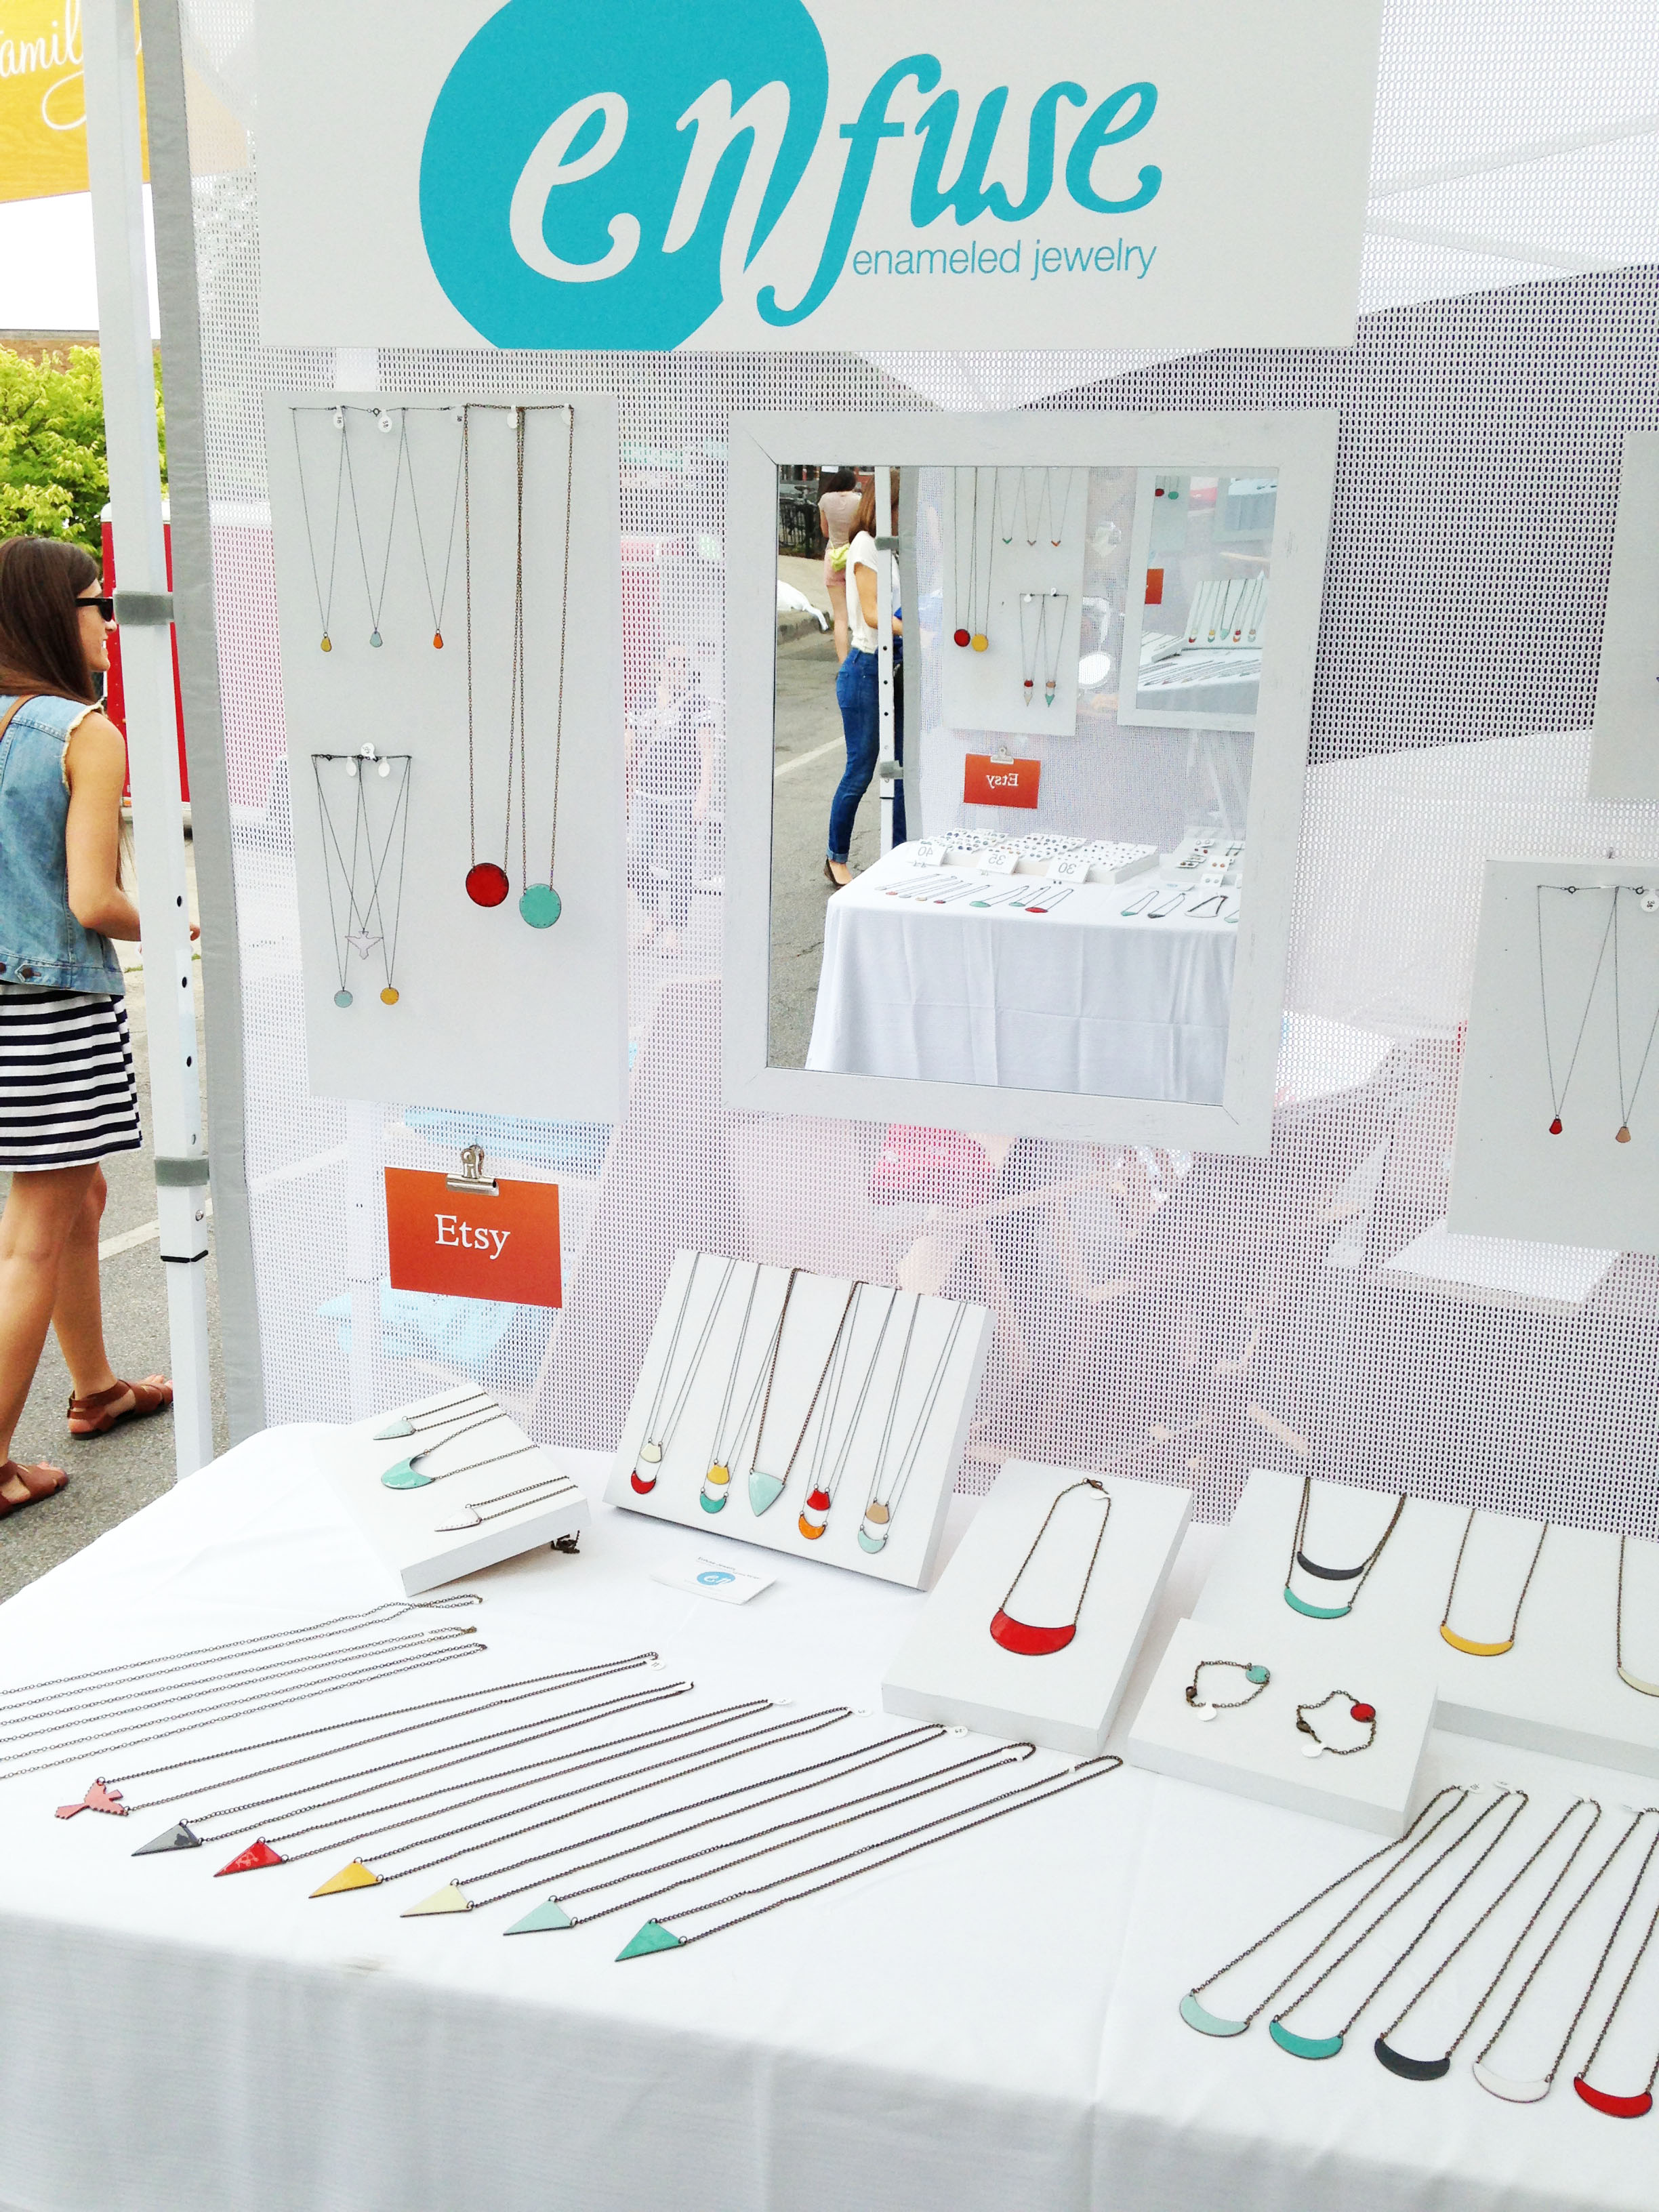 Enfuse Jewelry booth with lots of fun colorful jewelry!